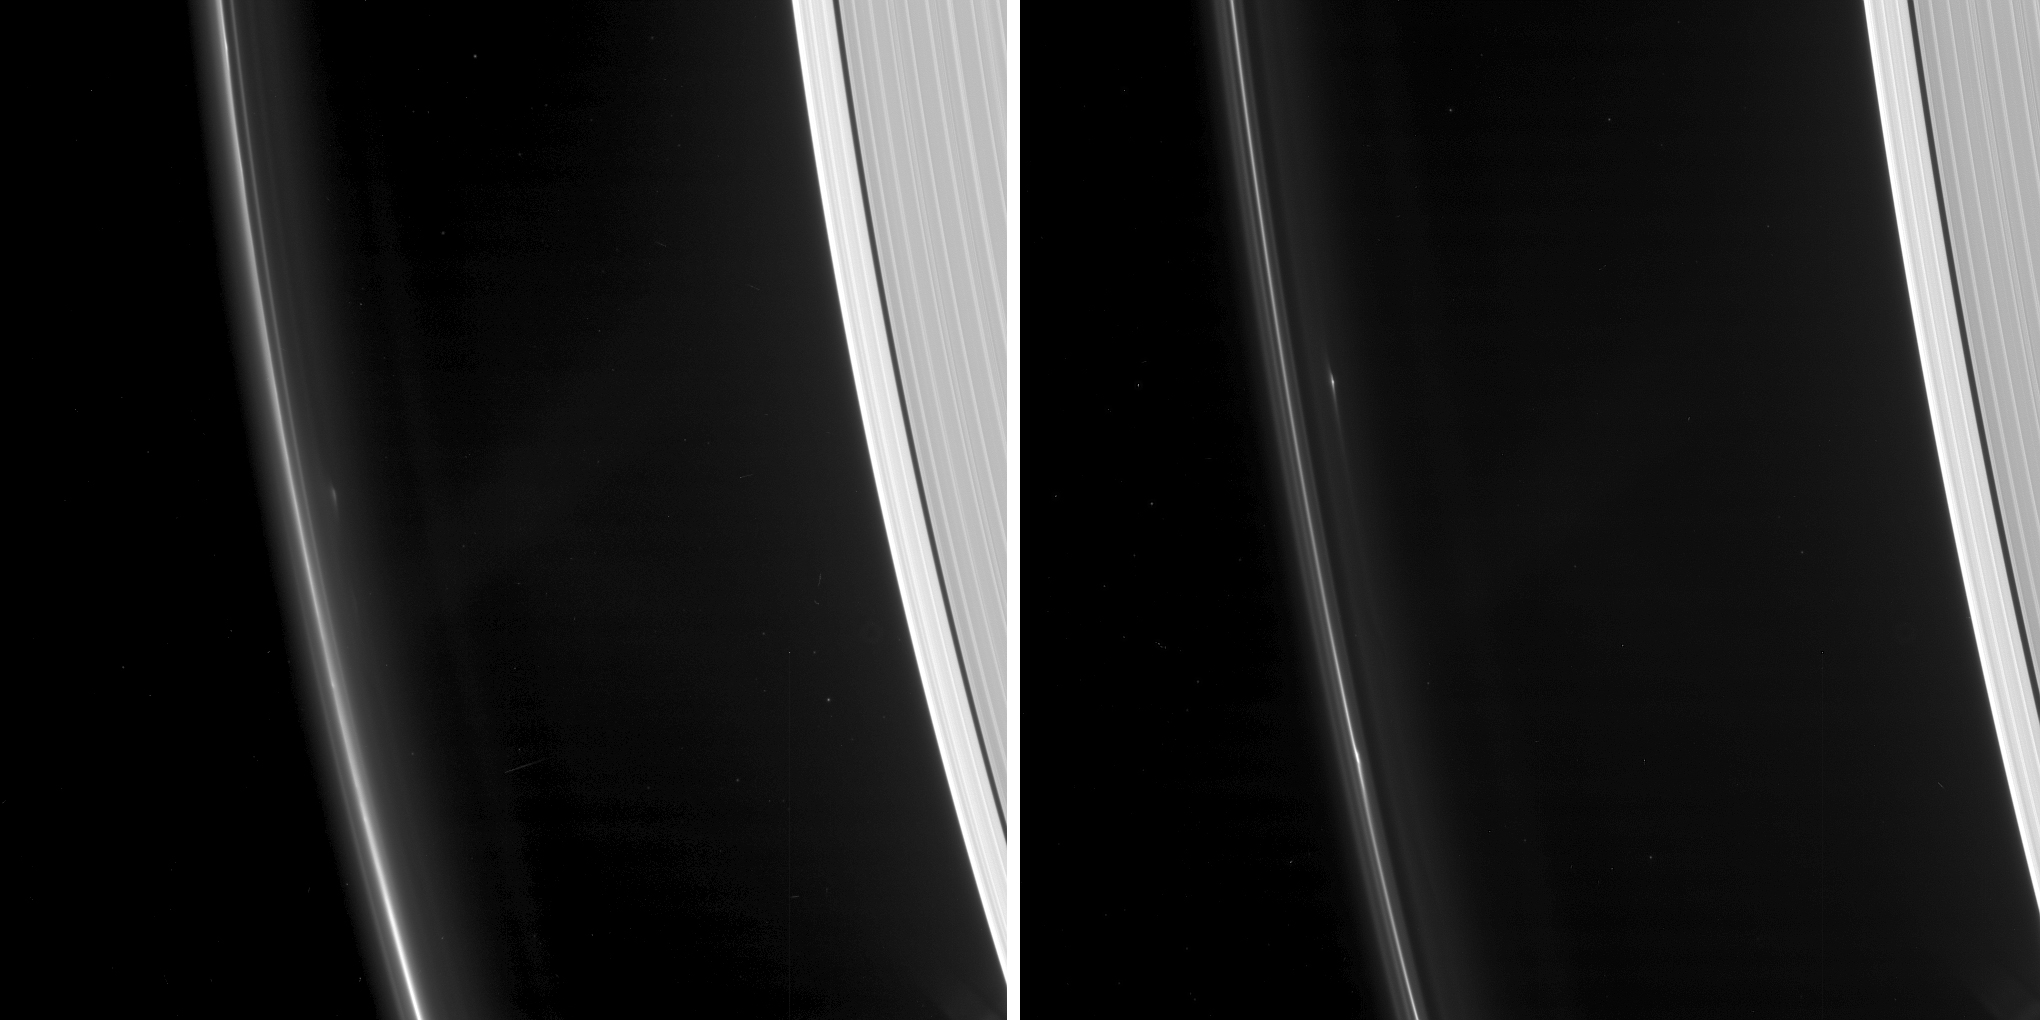 Two sets of images of objects found in Saturn's F ring